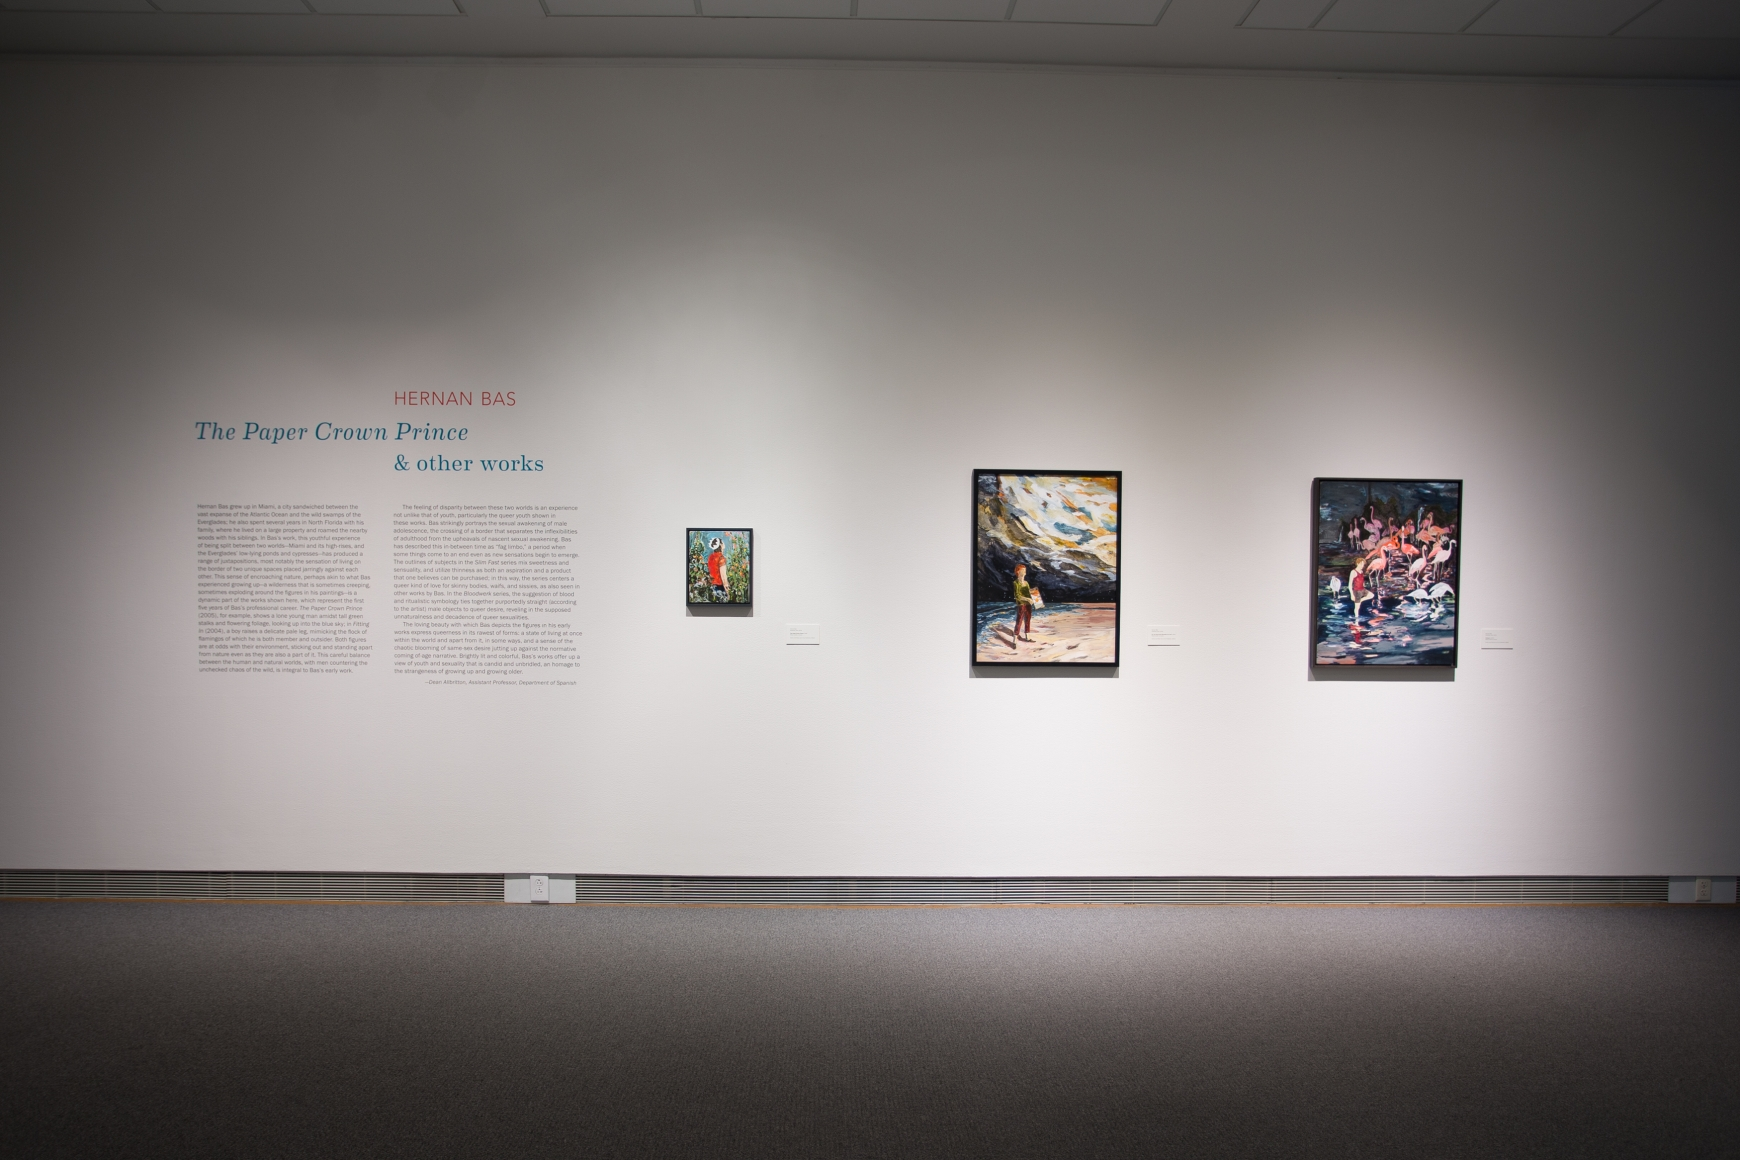 Hernan Bas: The Paper Crown Prince and Other Works, Installation view, Colby College Museum of Art, Waterville, ME